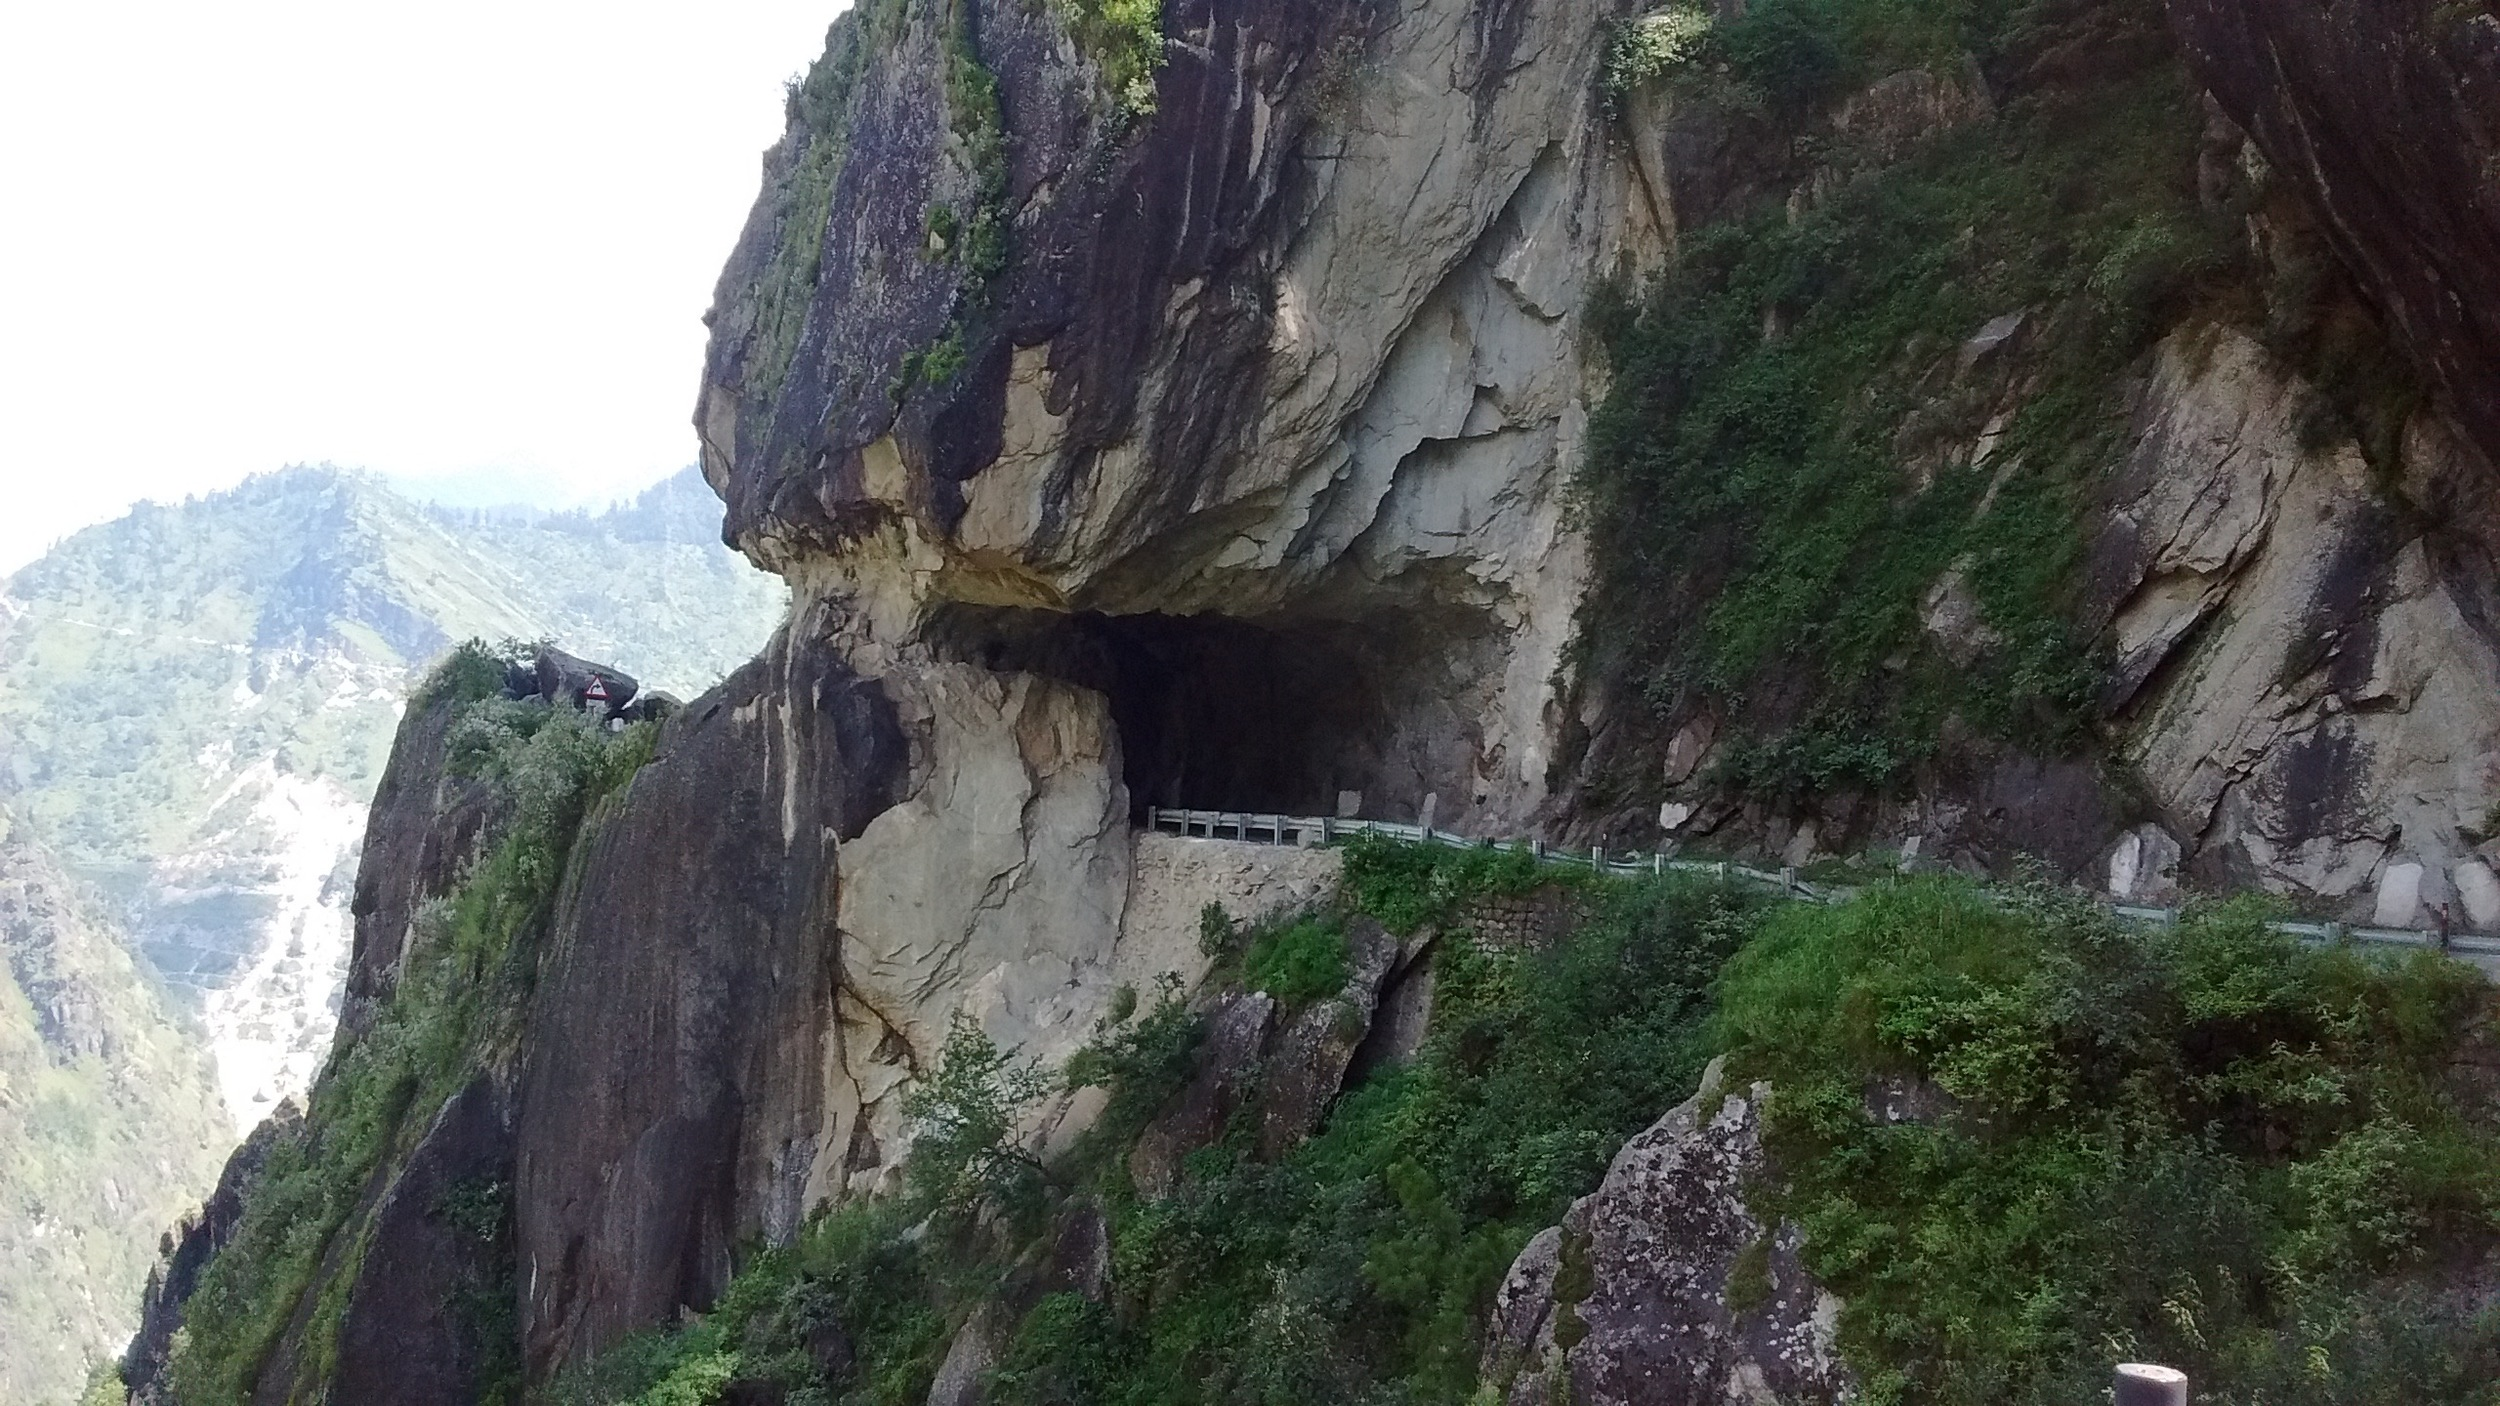 Another hour after this natural tunnel, less friendly roads await